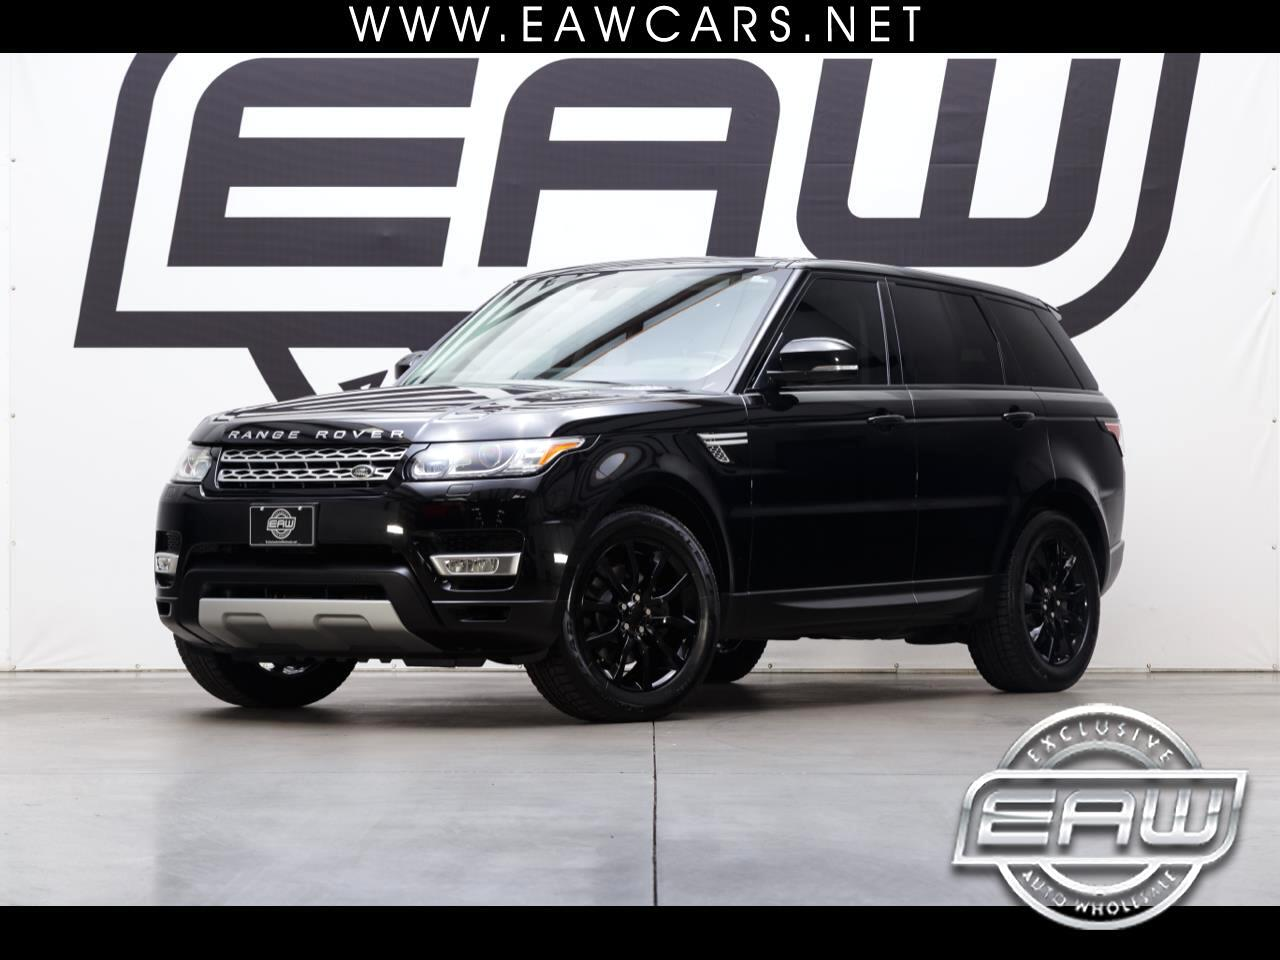 2015 Land Rover Range Rover Sport HSE 4WD SUPERCHARGED